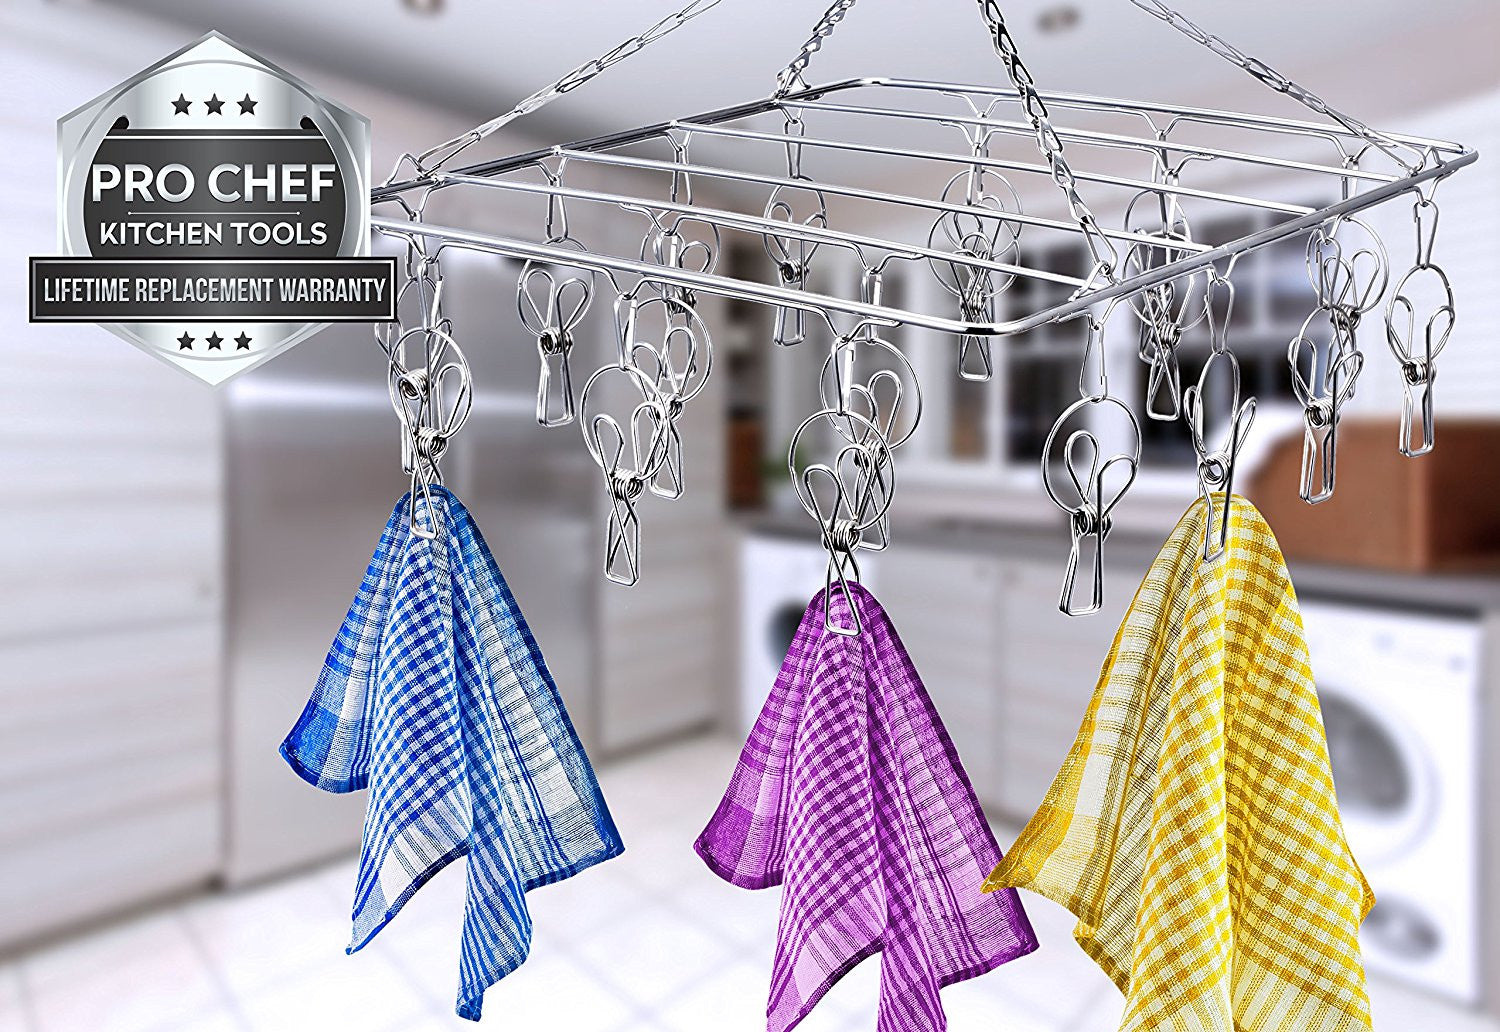 Pro Chef Kitchen Tools Stainless Steel Hanging Drying Rack